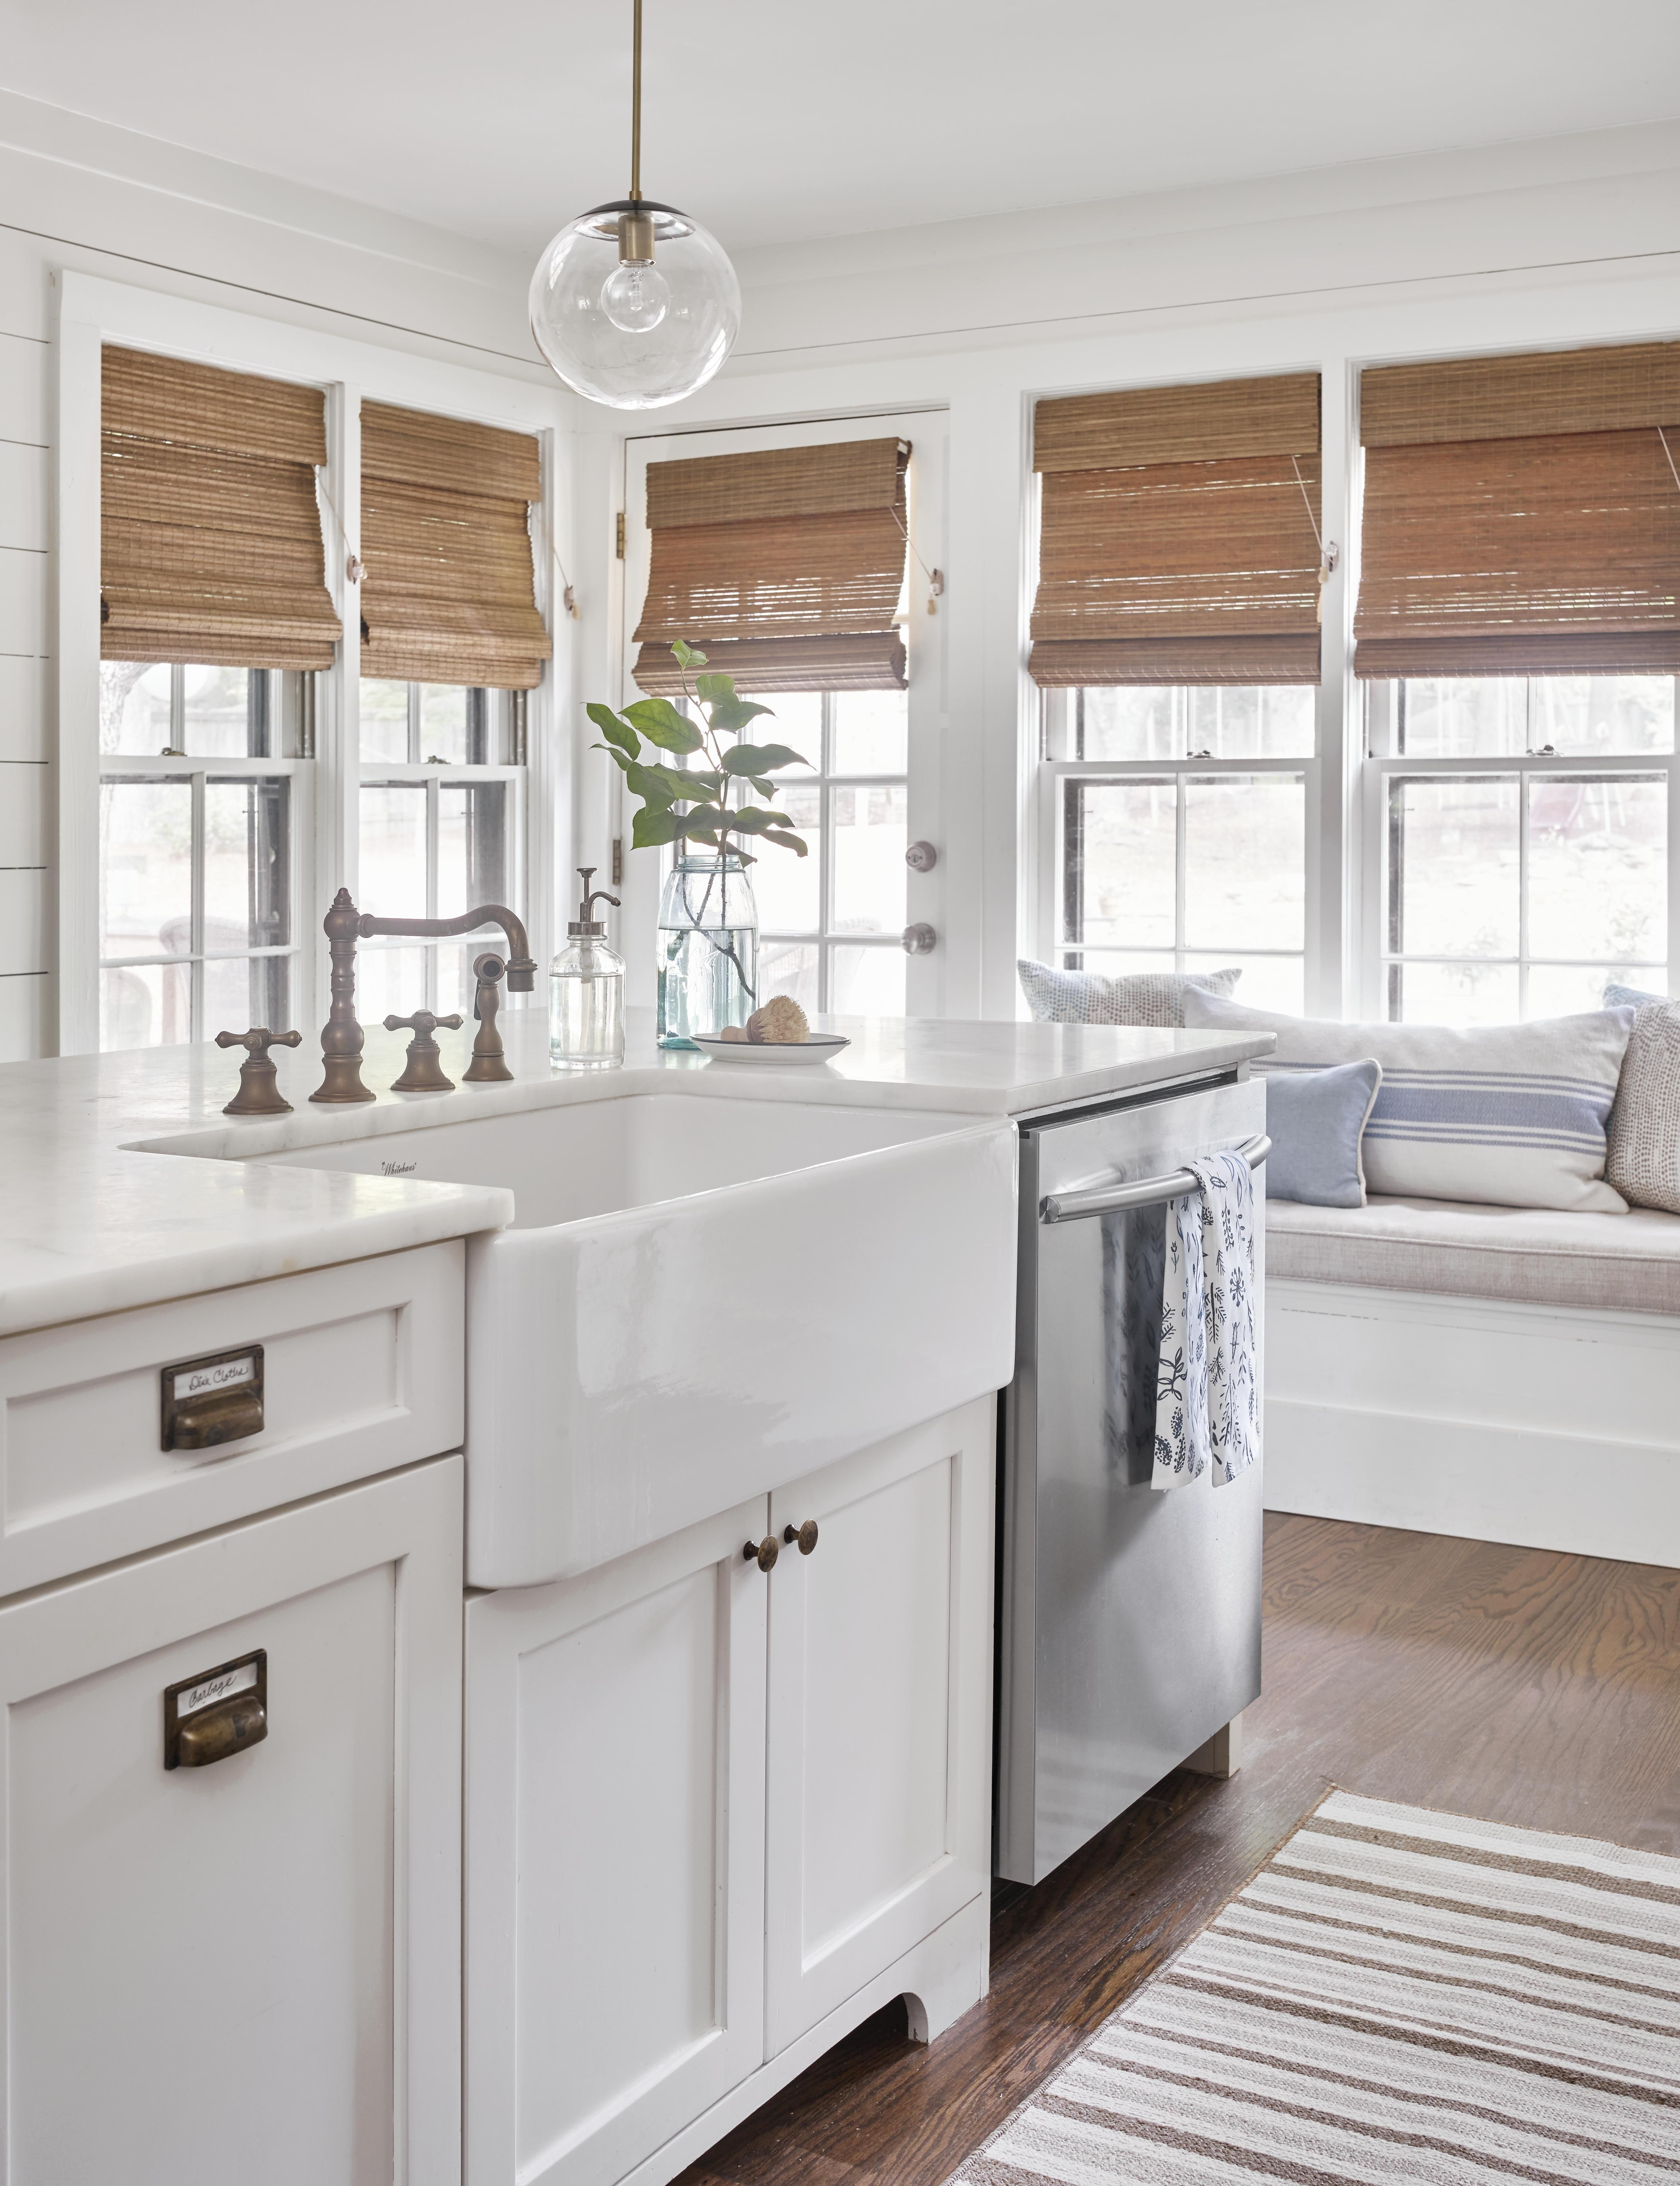 Joanna Gaines Would Love This Amazing Farmhouse Kitchen Makeover #kitchenmakeovers